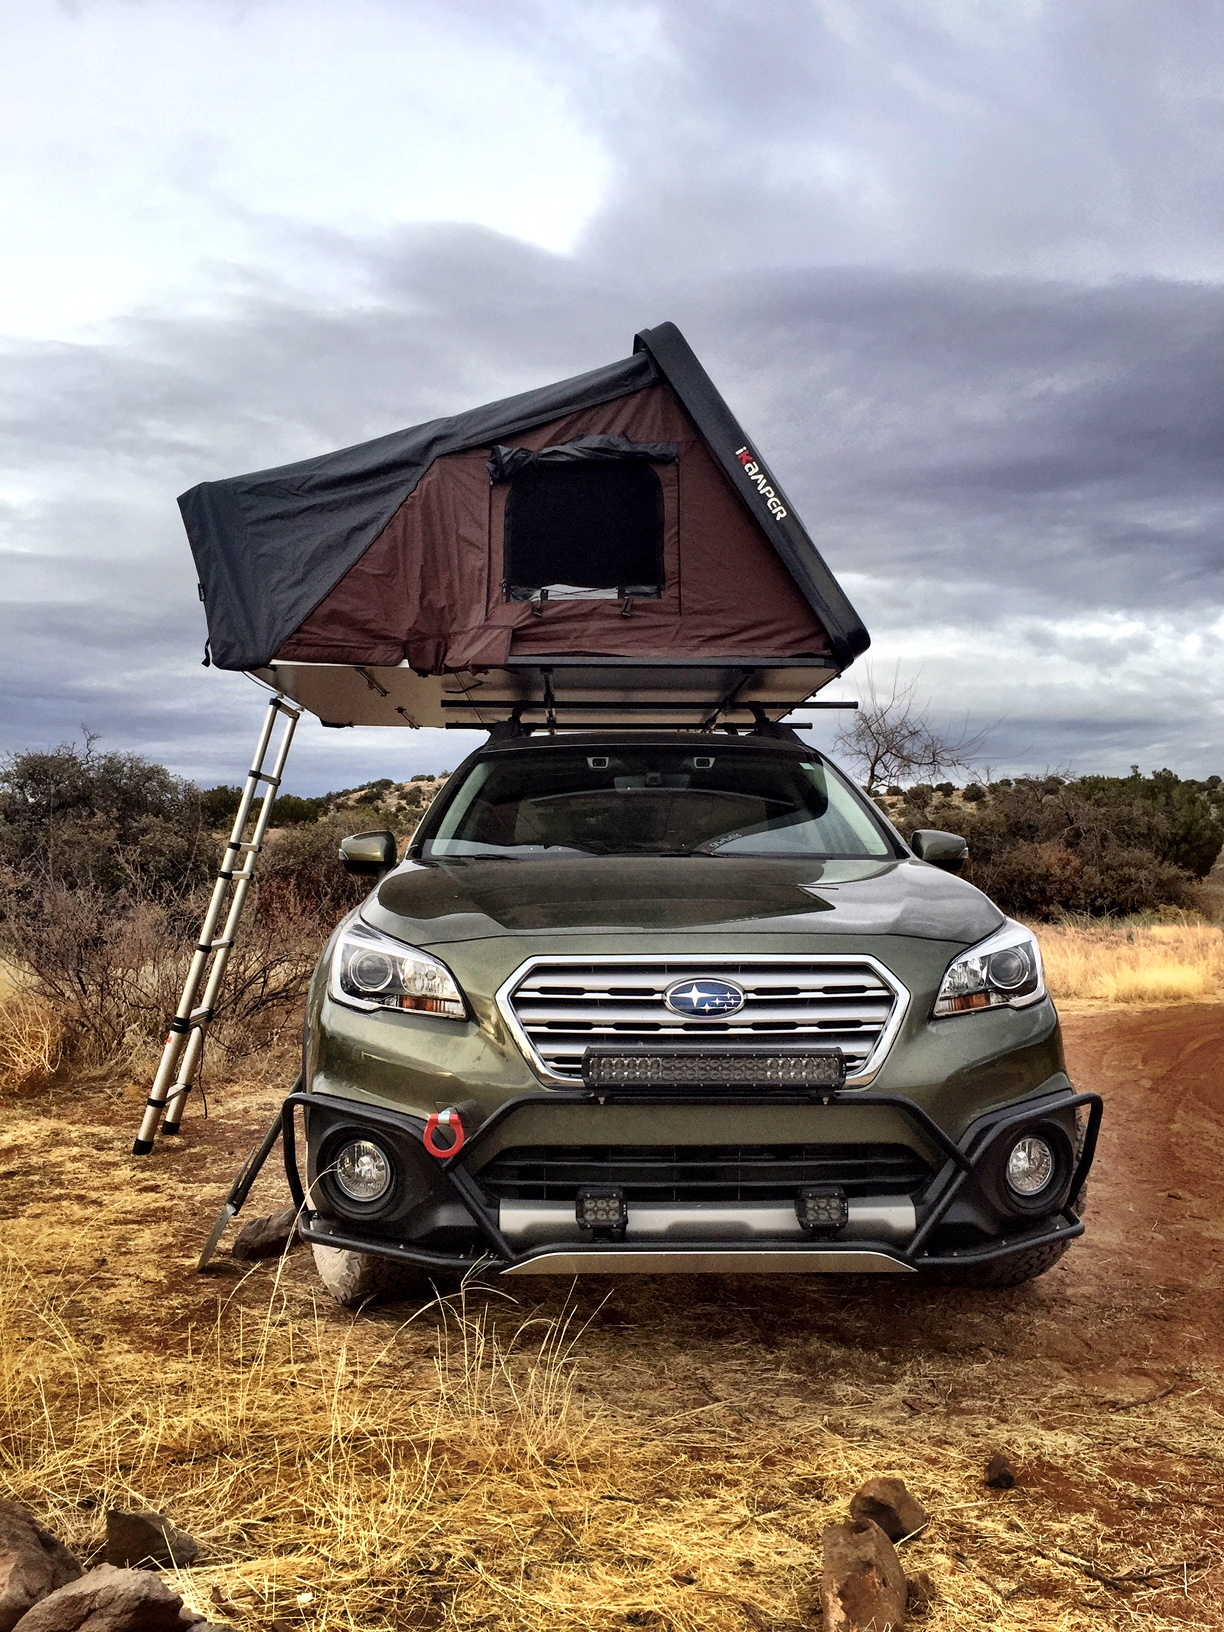 2017 4XPEDITION Subaru Outback 3.6R Overland Road Warrior ...